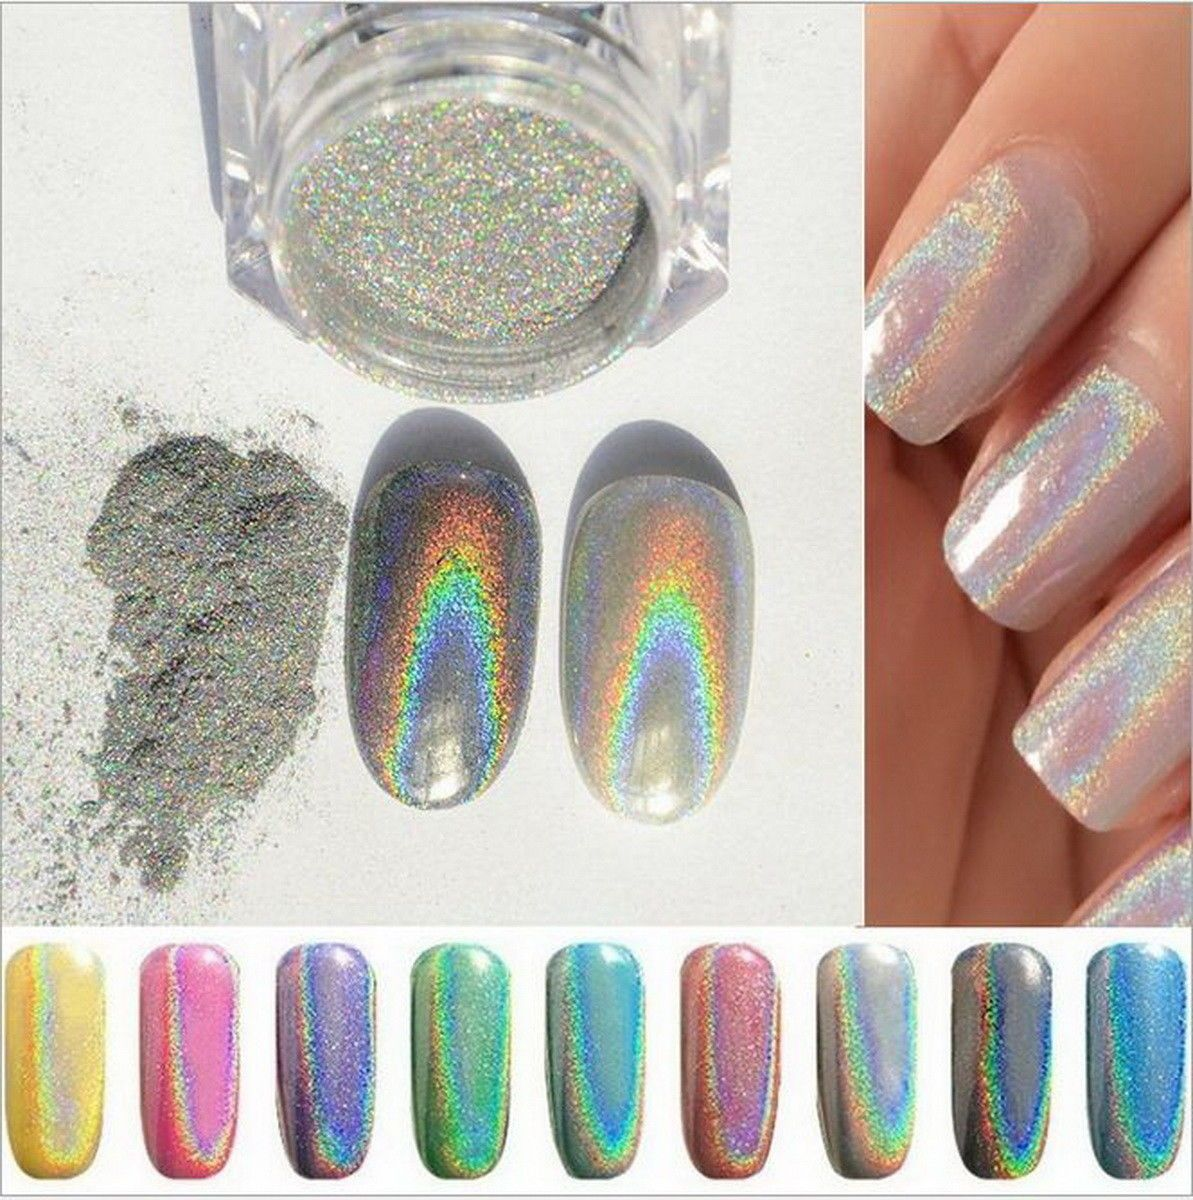 Extra Fine Holographic Chrome Nail Art Powder: Holographic Rainbow Nails Effects Ultra Fine Chrome Powder